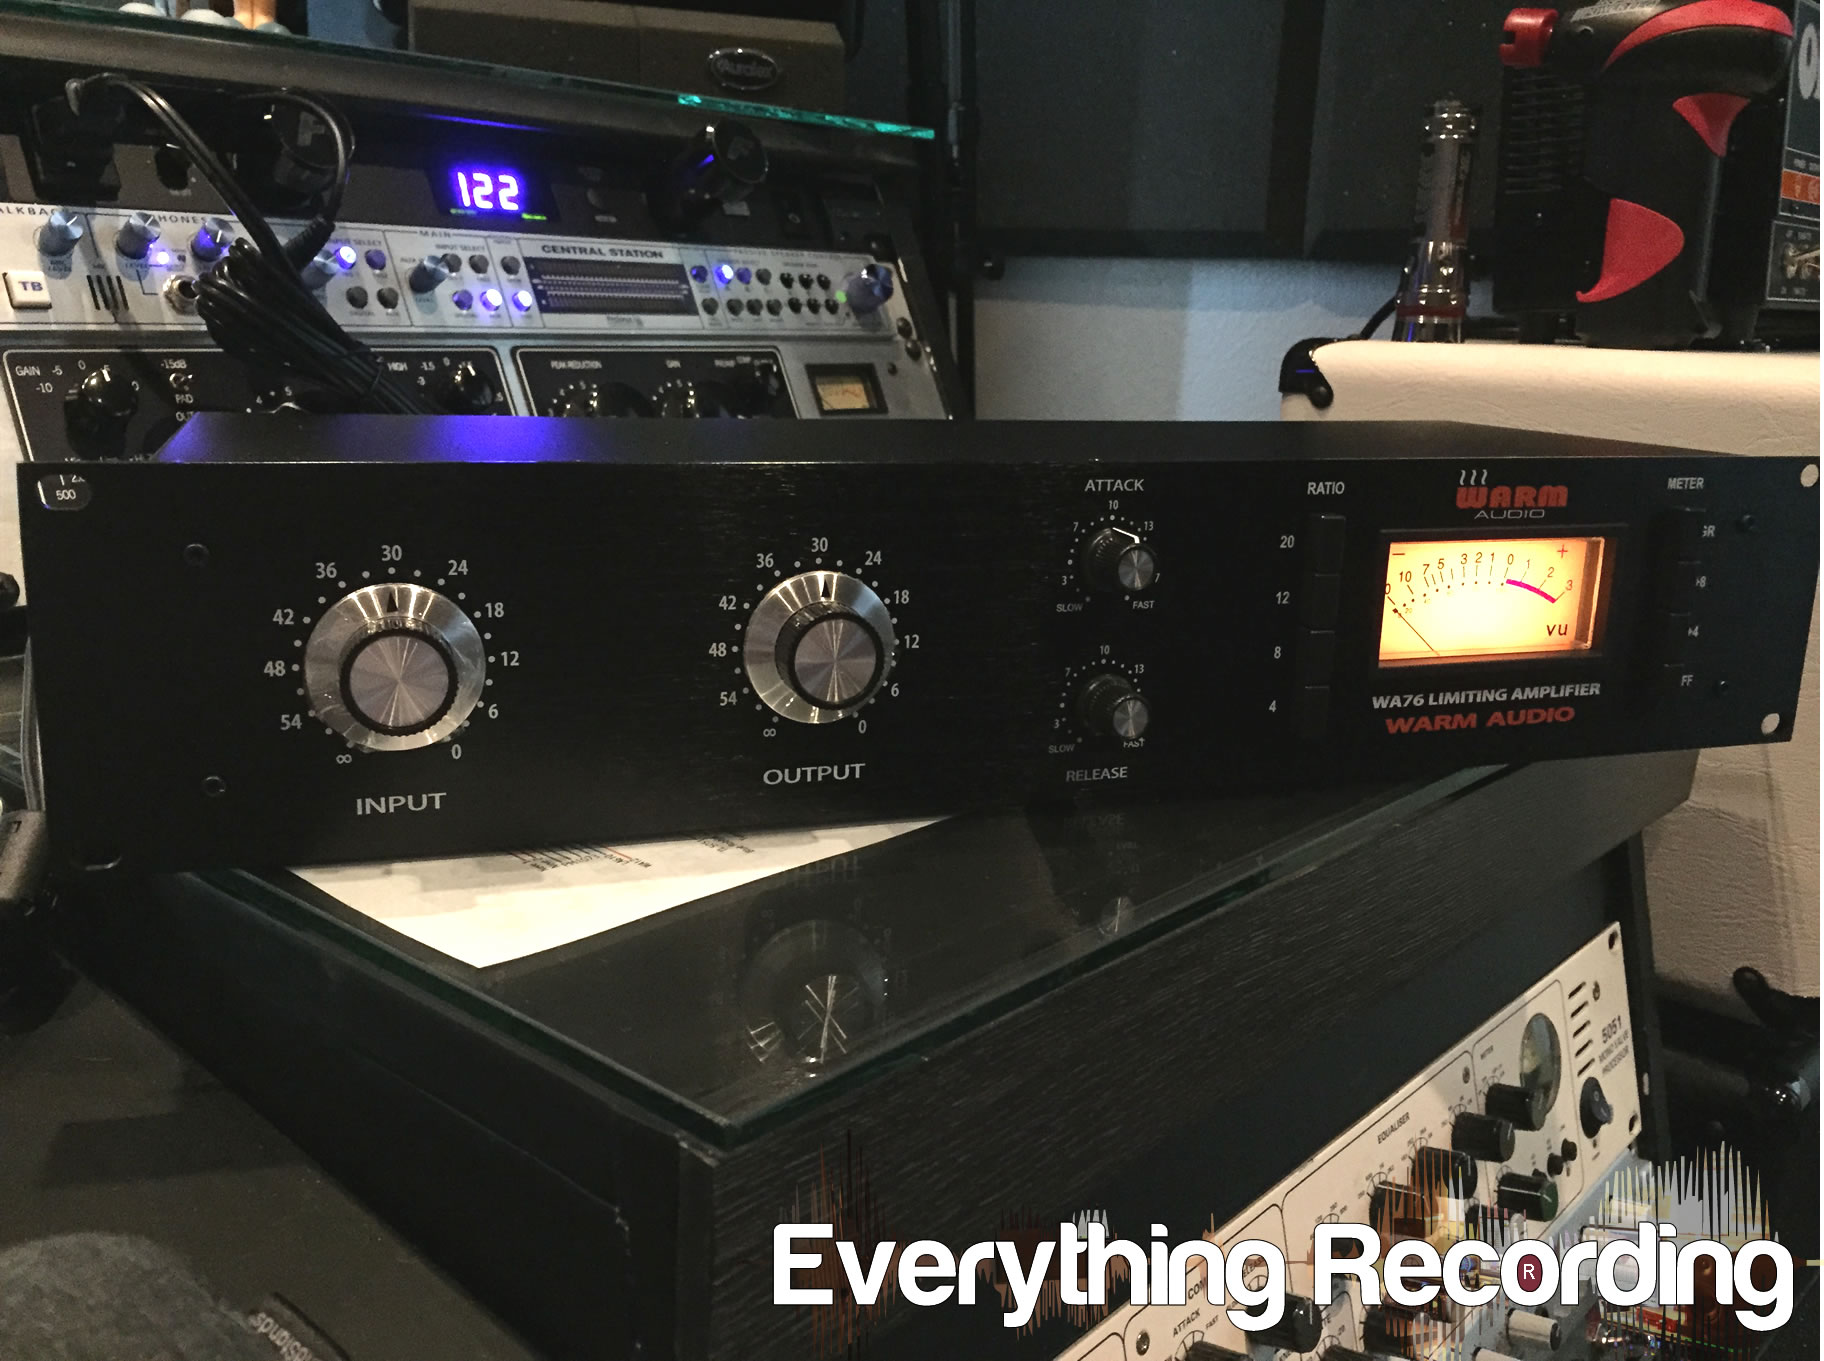 Review: Warm Audio WA76 - Everything Recording